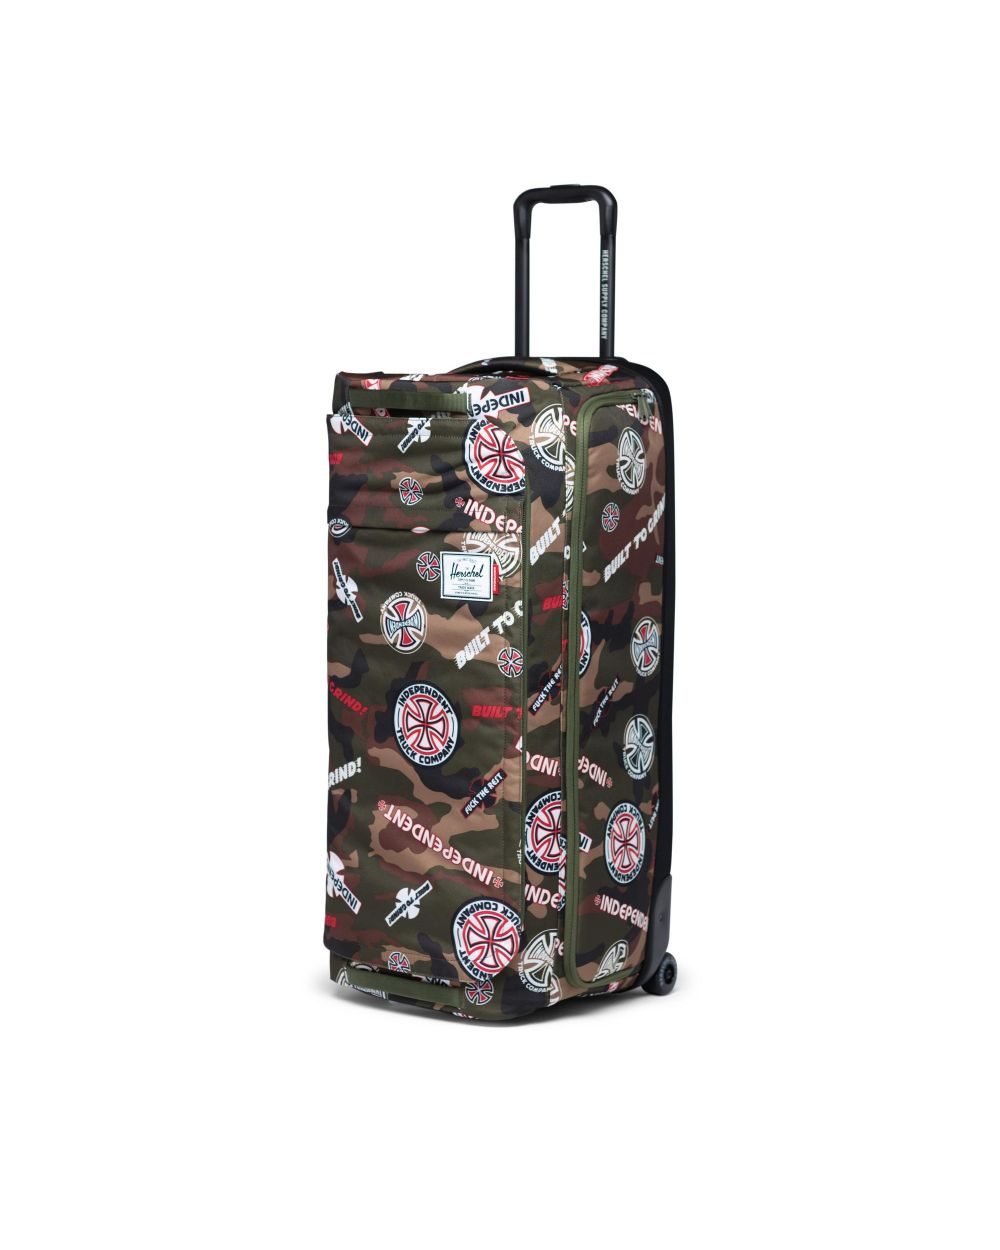 Herschel wheelie outfitter independent suitcase in multi coloured print